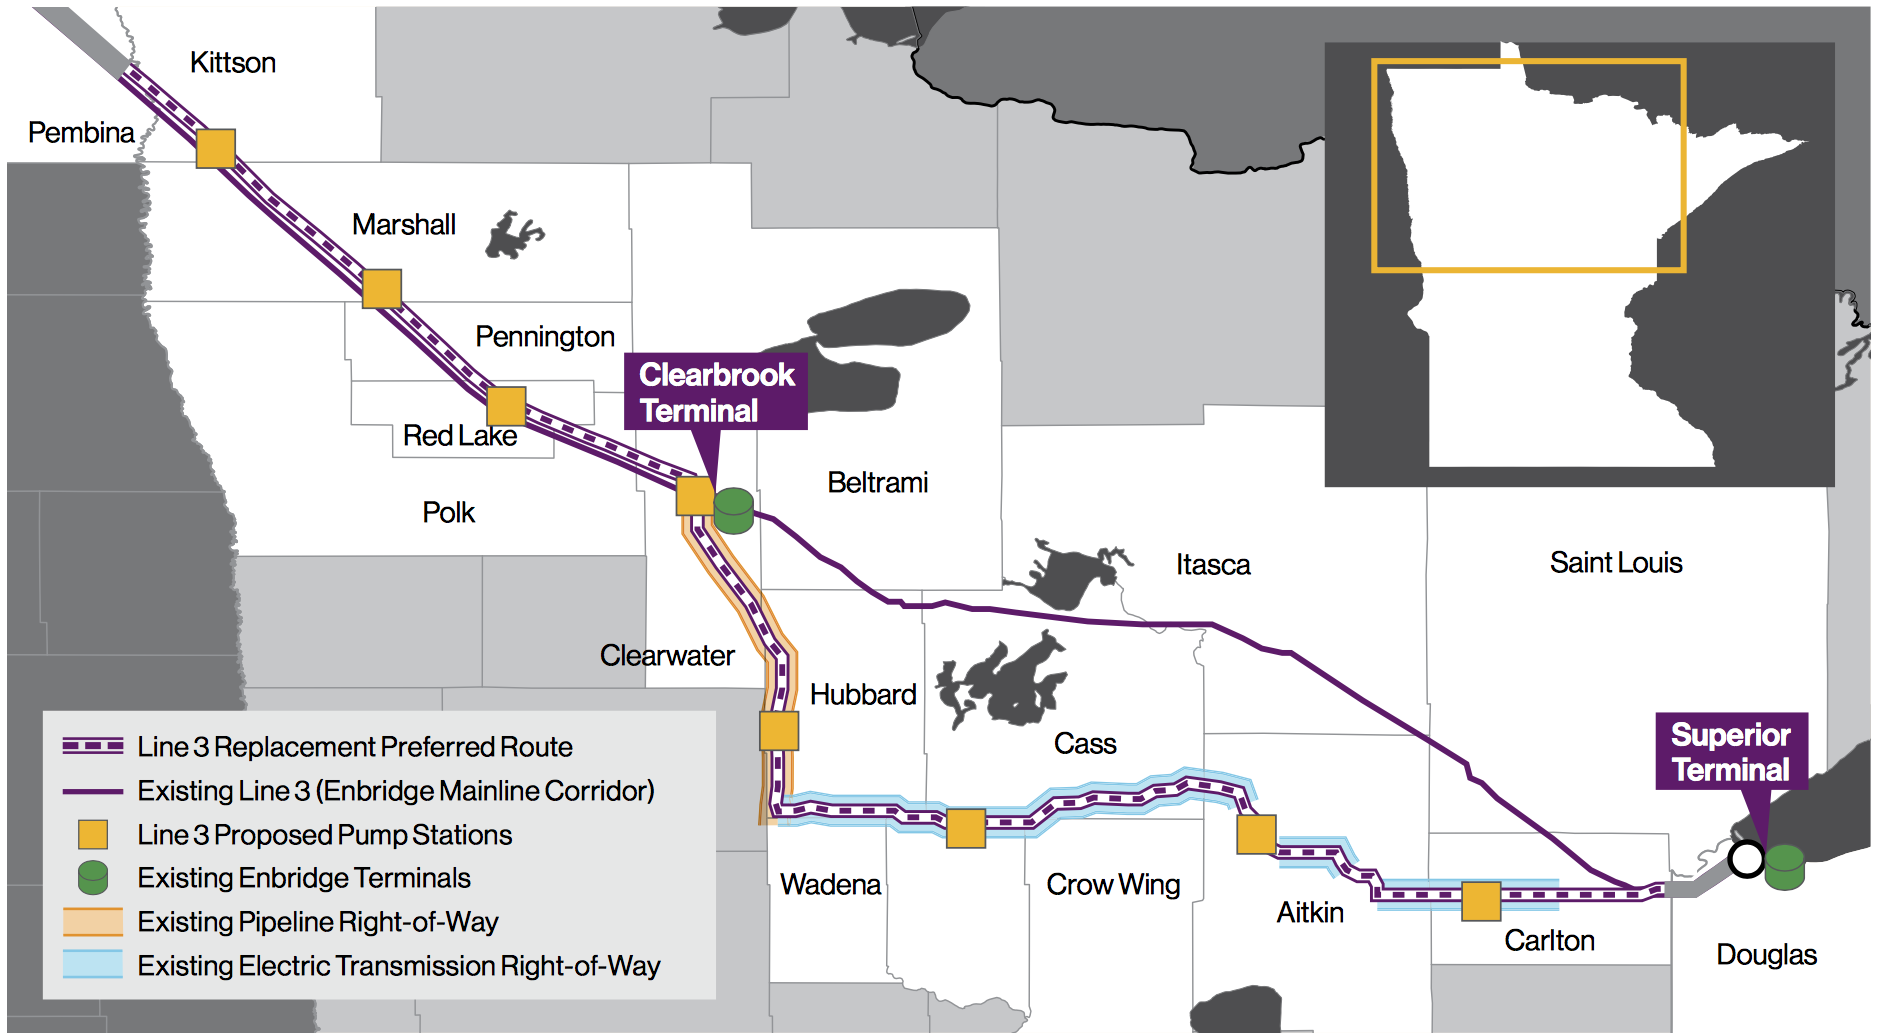 COURTESY ENBRIDGE  LINE 3 REPLACEMENT PROJECT SUMMARY